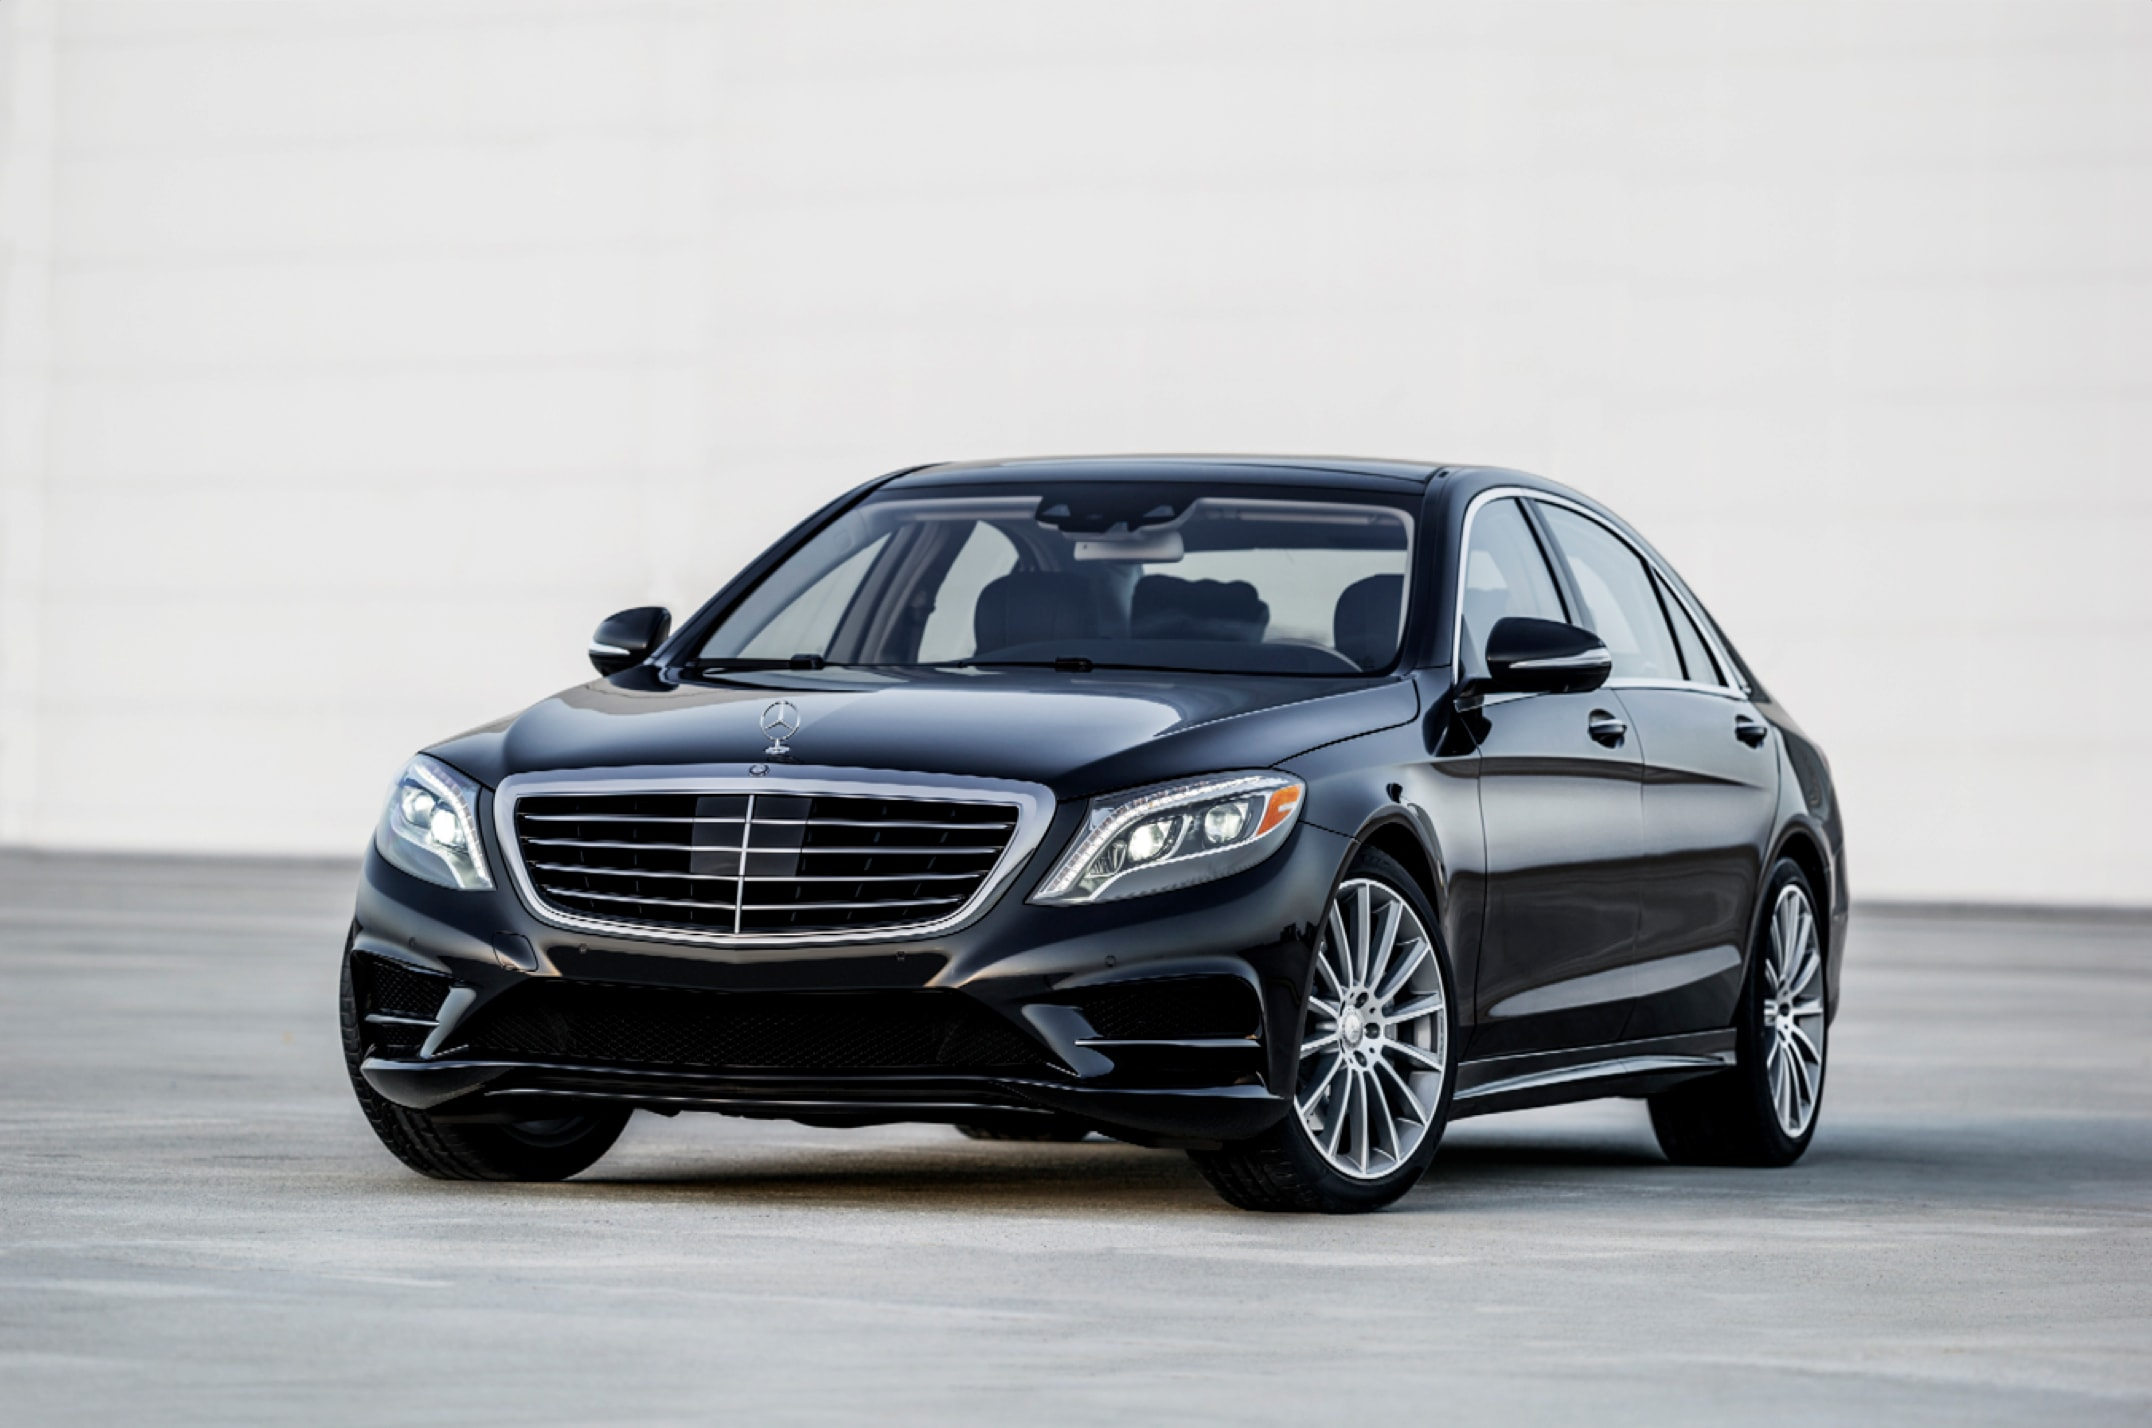 2014 Mercedes Benz S Class will redefine luxury vehicles in Sioux